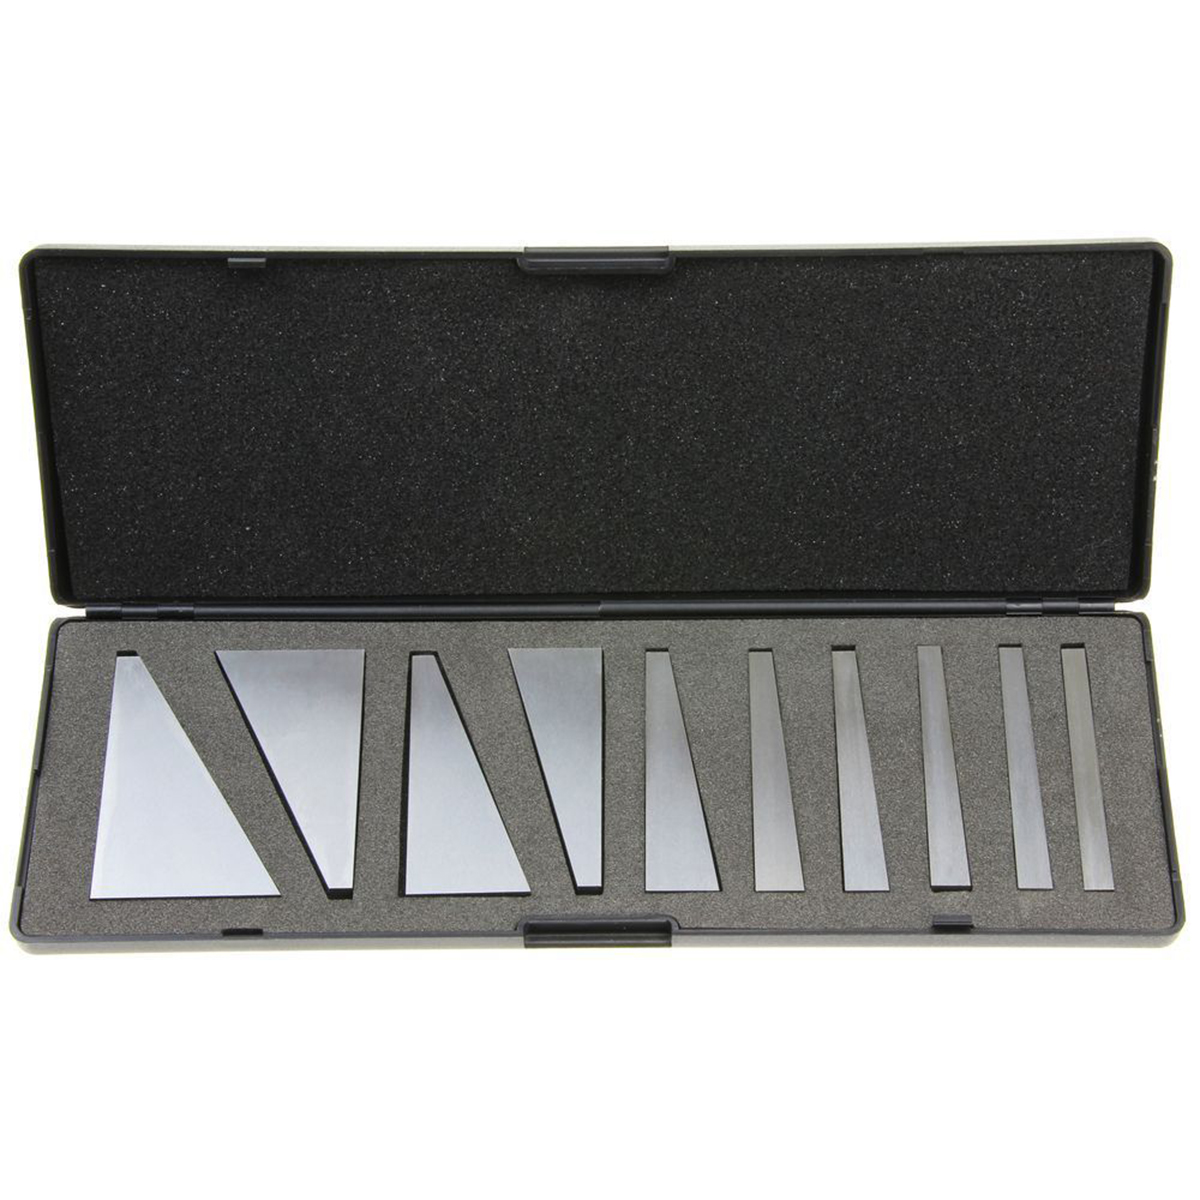 10pcs/lot Precision Angle Block Set Practical Ground 1 to 30 Degree For Machinist Alignment Measurement Tool Mayitr presenting to boards practical skills for corporate presentations volume 1